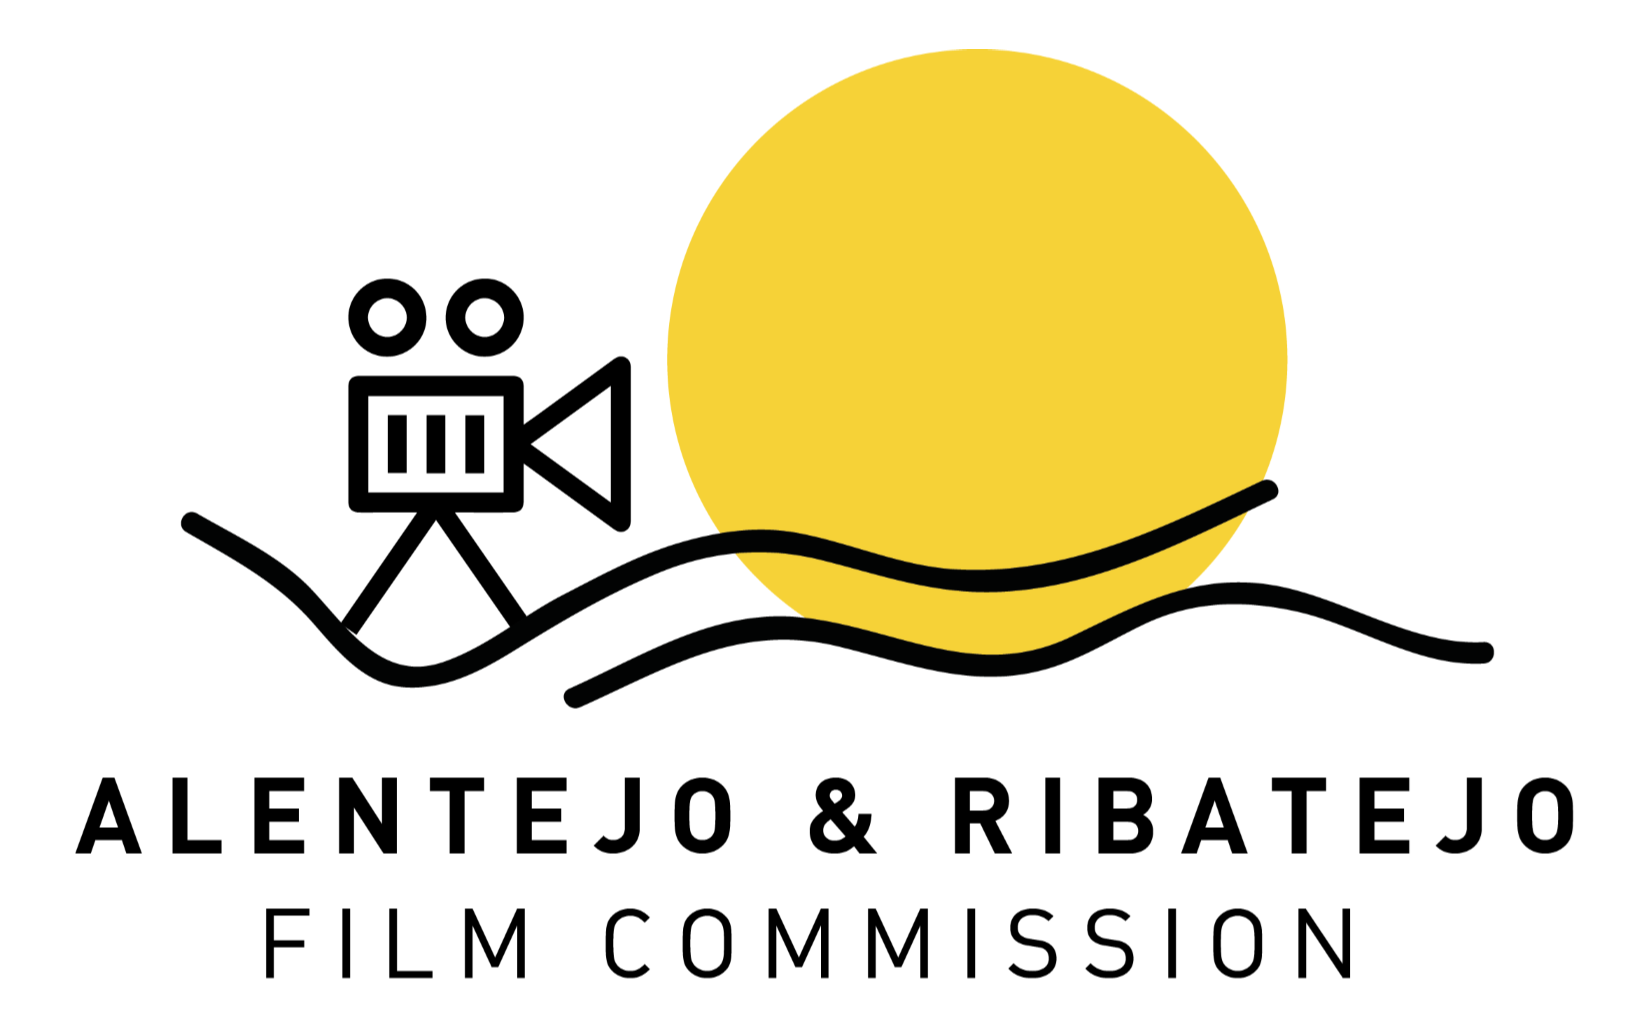 Alentejo Film Commission Logo